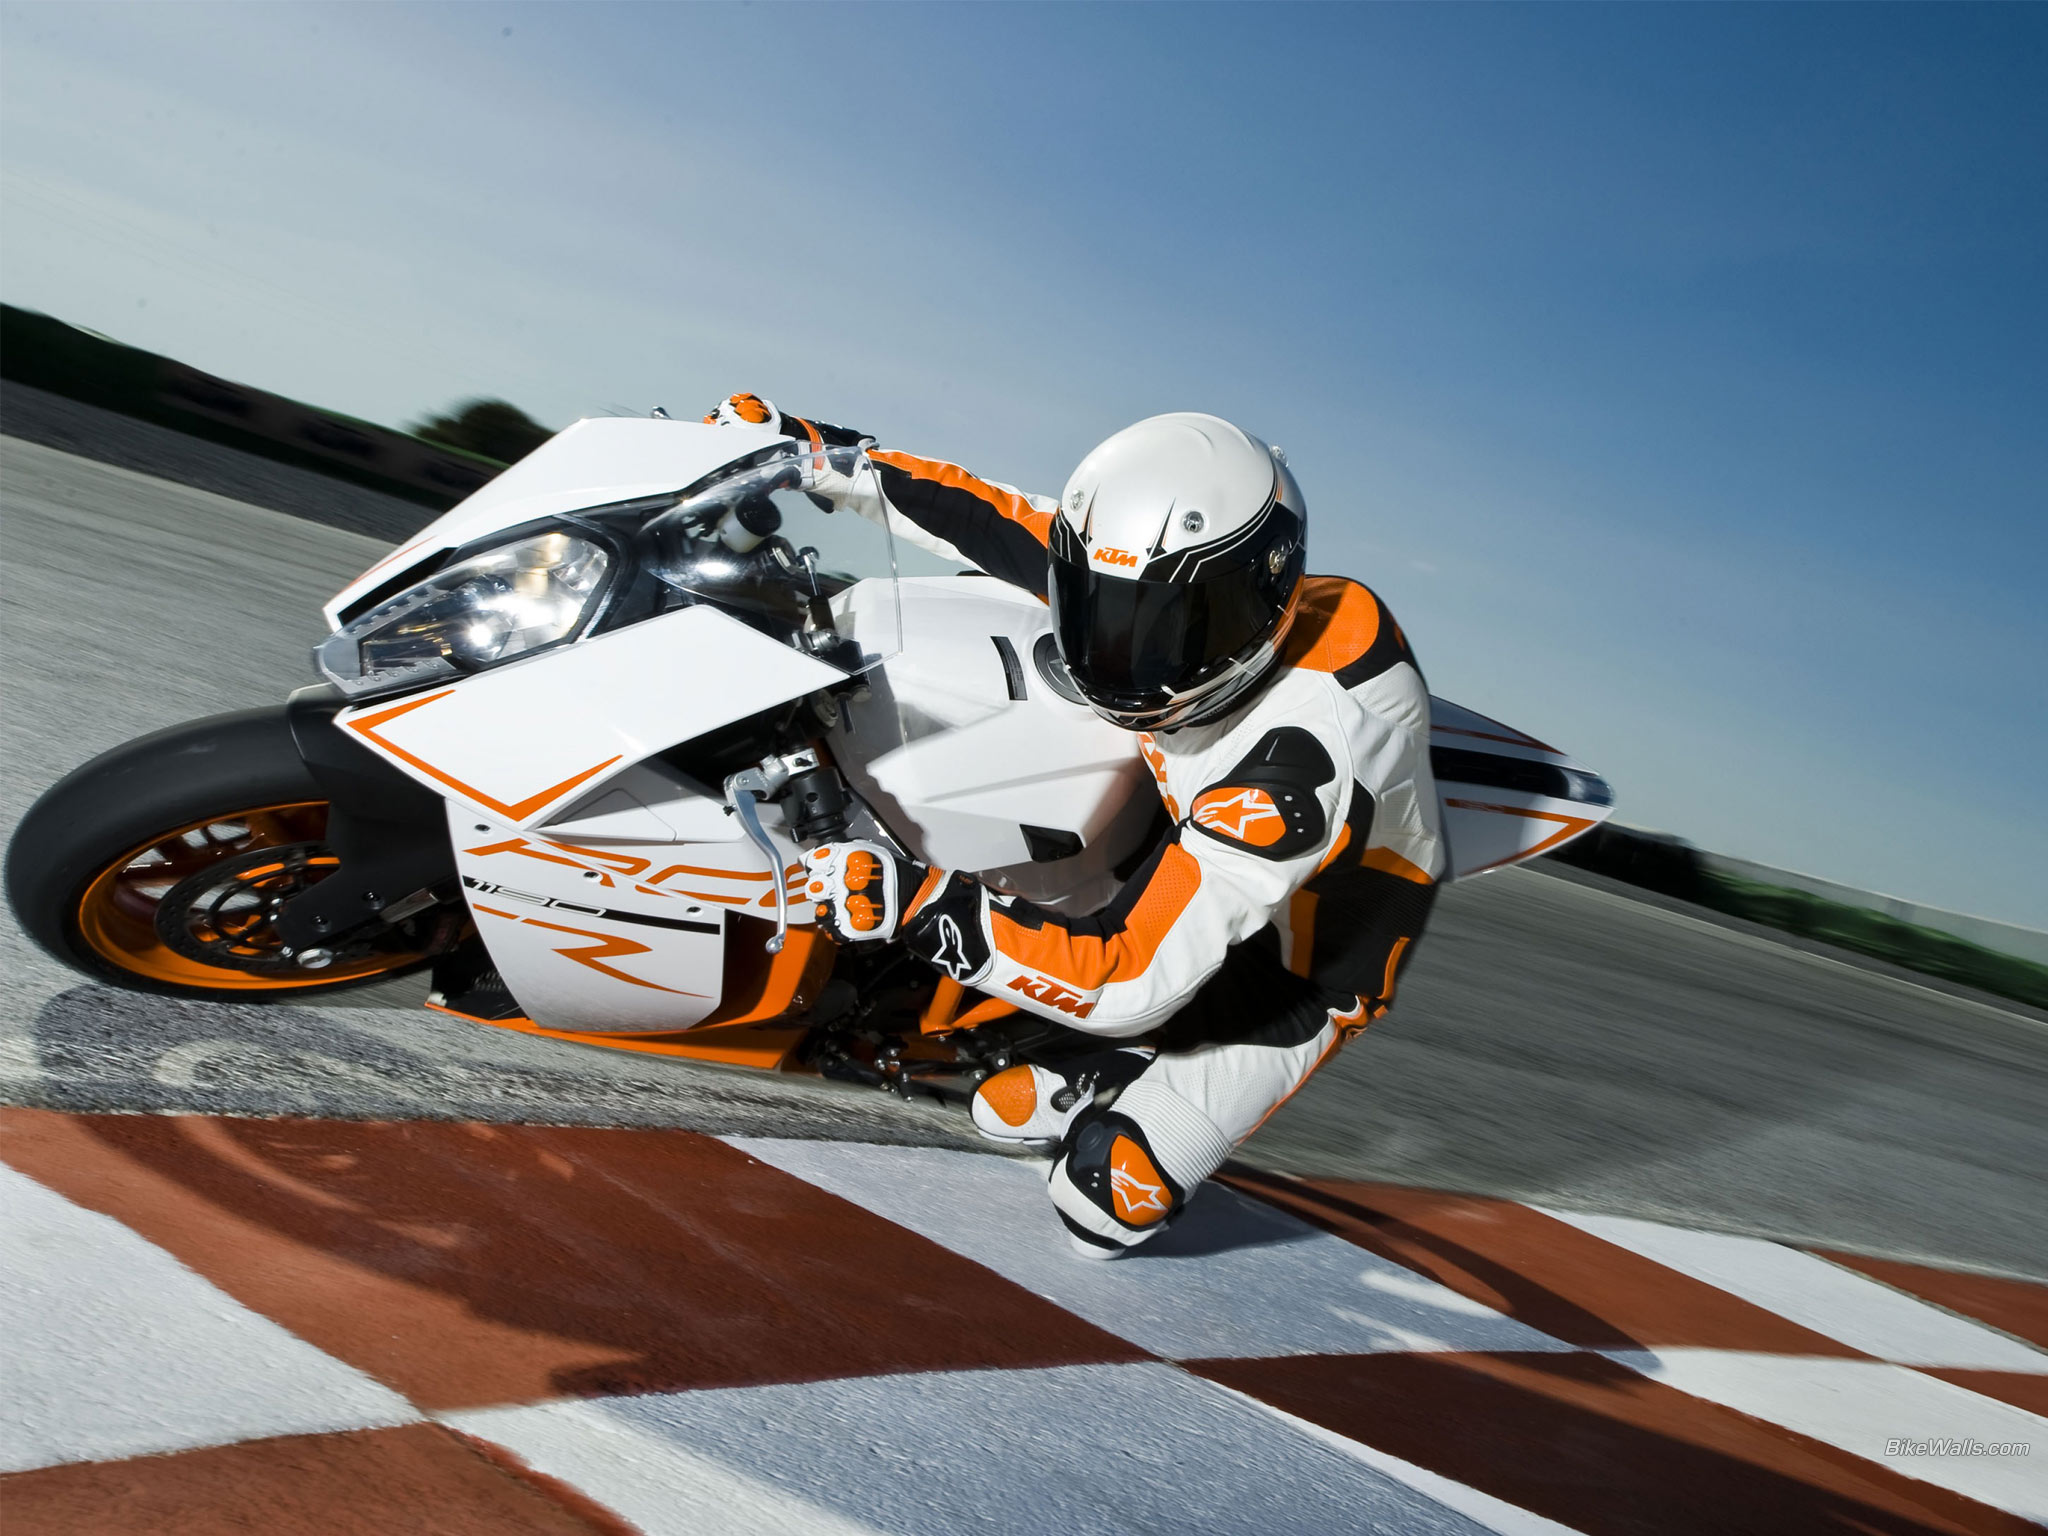 KTM RC8 R 1024 x 768 wallpaper 2048x1536